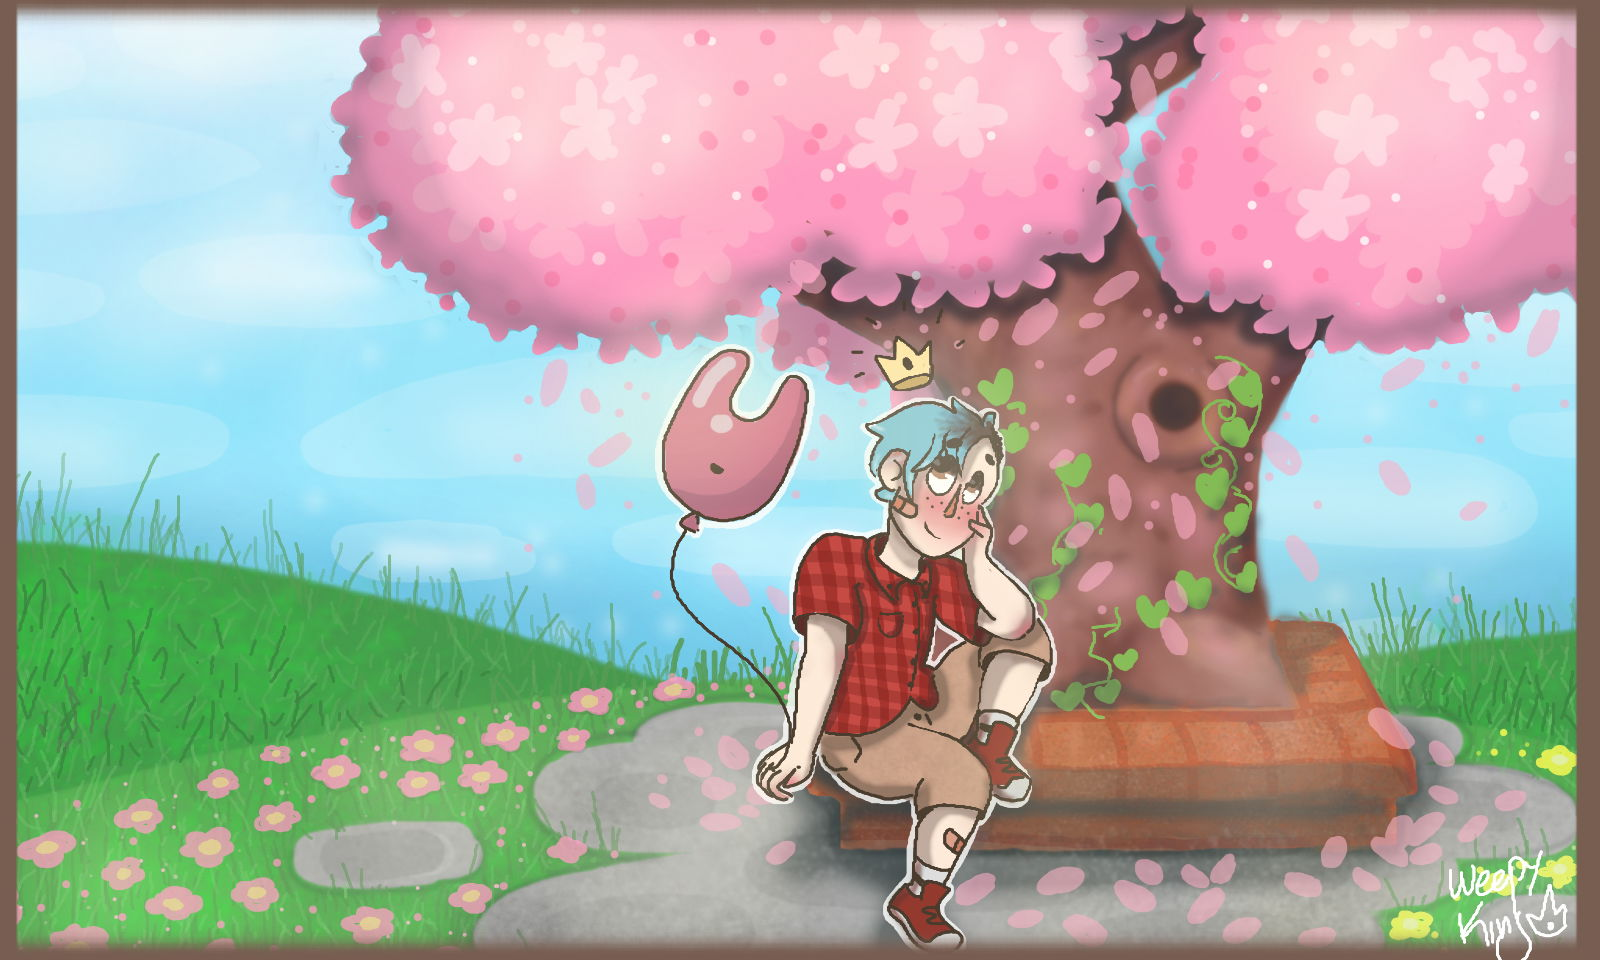 Animal Crossing cherry blossoms by WeepyKing